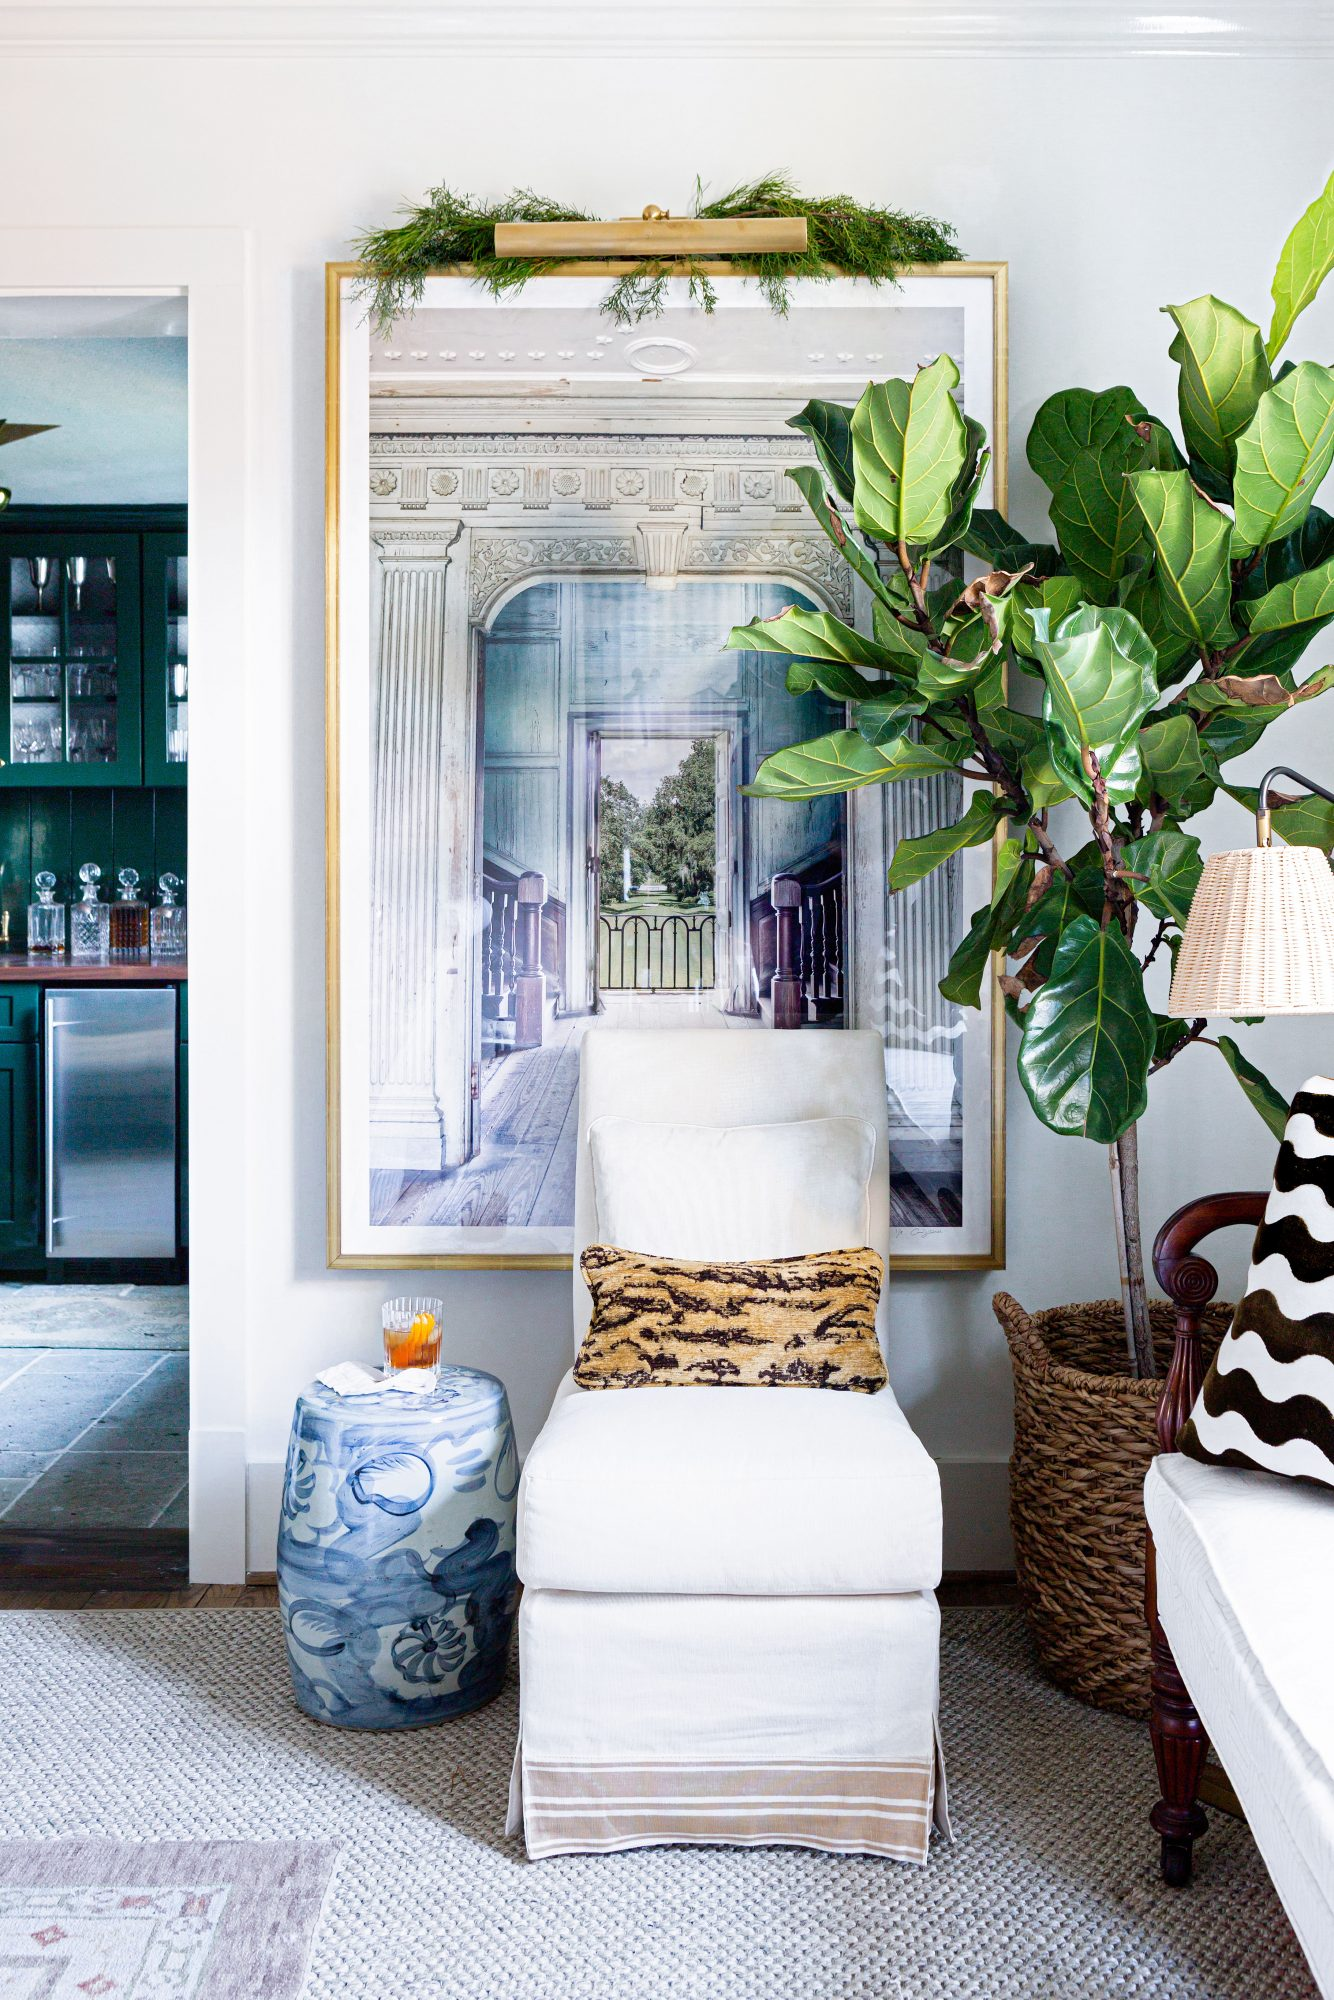 Home vignette with traditional furniture, fiddle-leaf fig tree, and modern photography art.